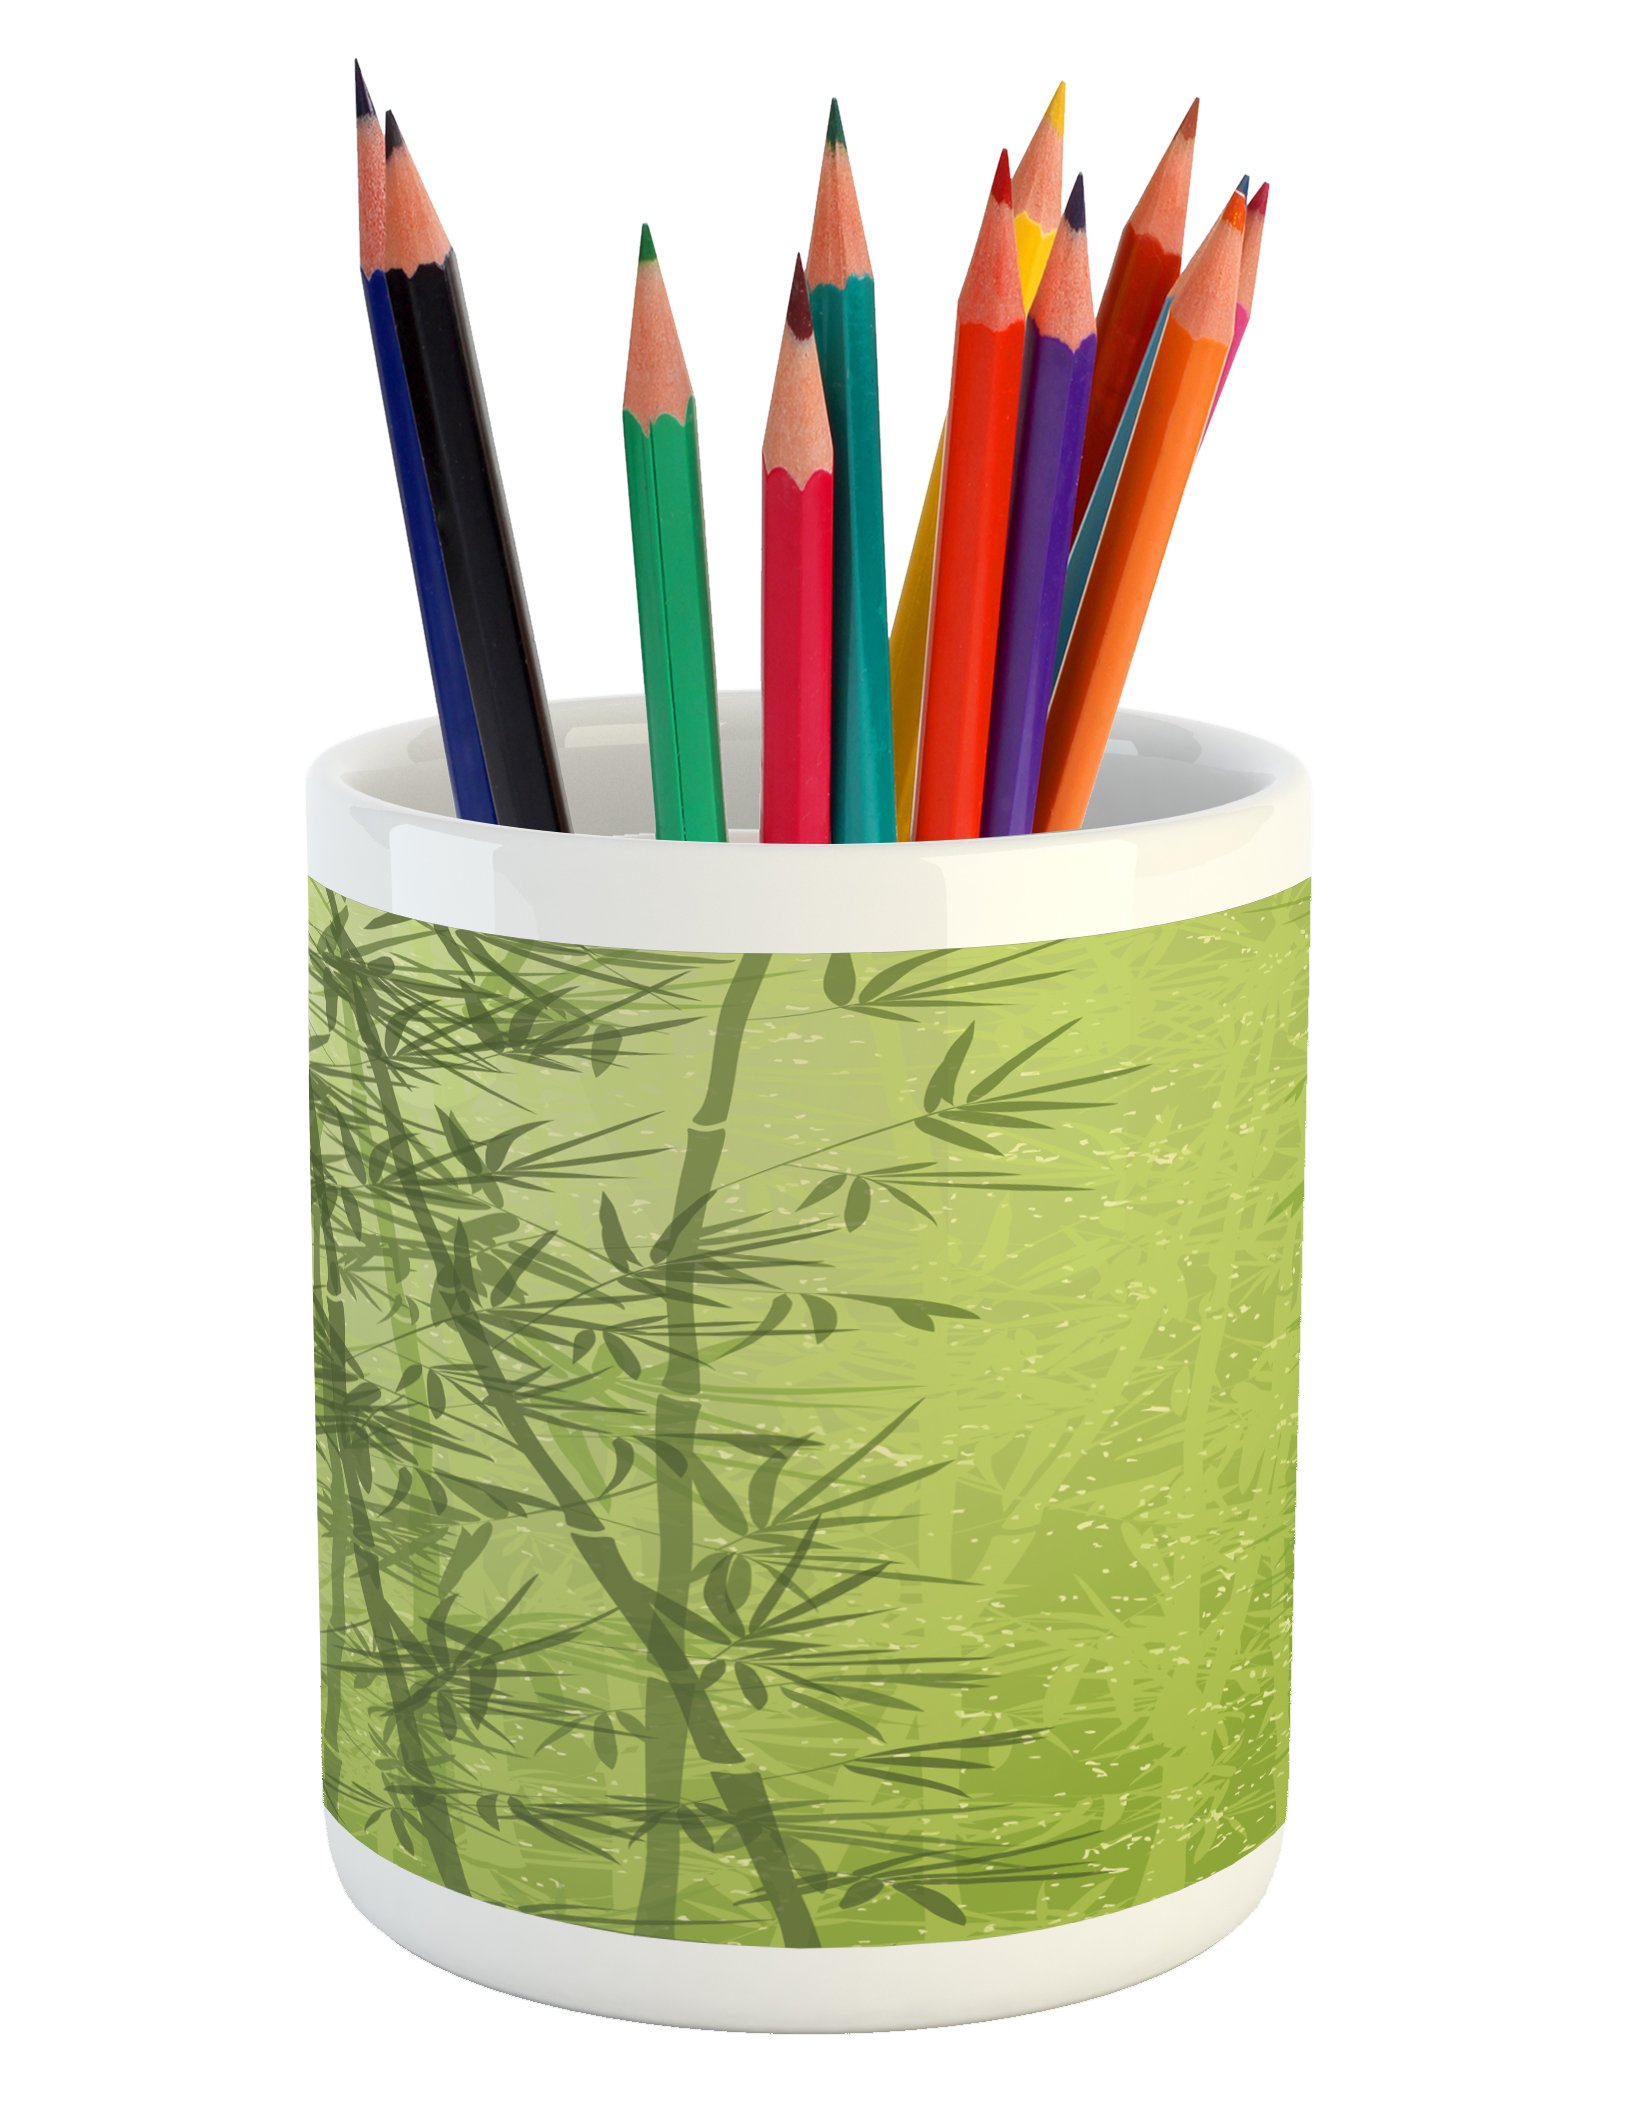 Ambesonne Exotic Pencil Pen Holder, Tropical Forest Rainforest Jungle Paradise Ecology Feng Shui Spa, Printed Ceramic Pencil Pen Holder for Desk Office Accessory, Pistachio Green Fern Green